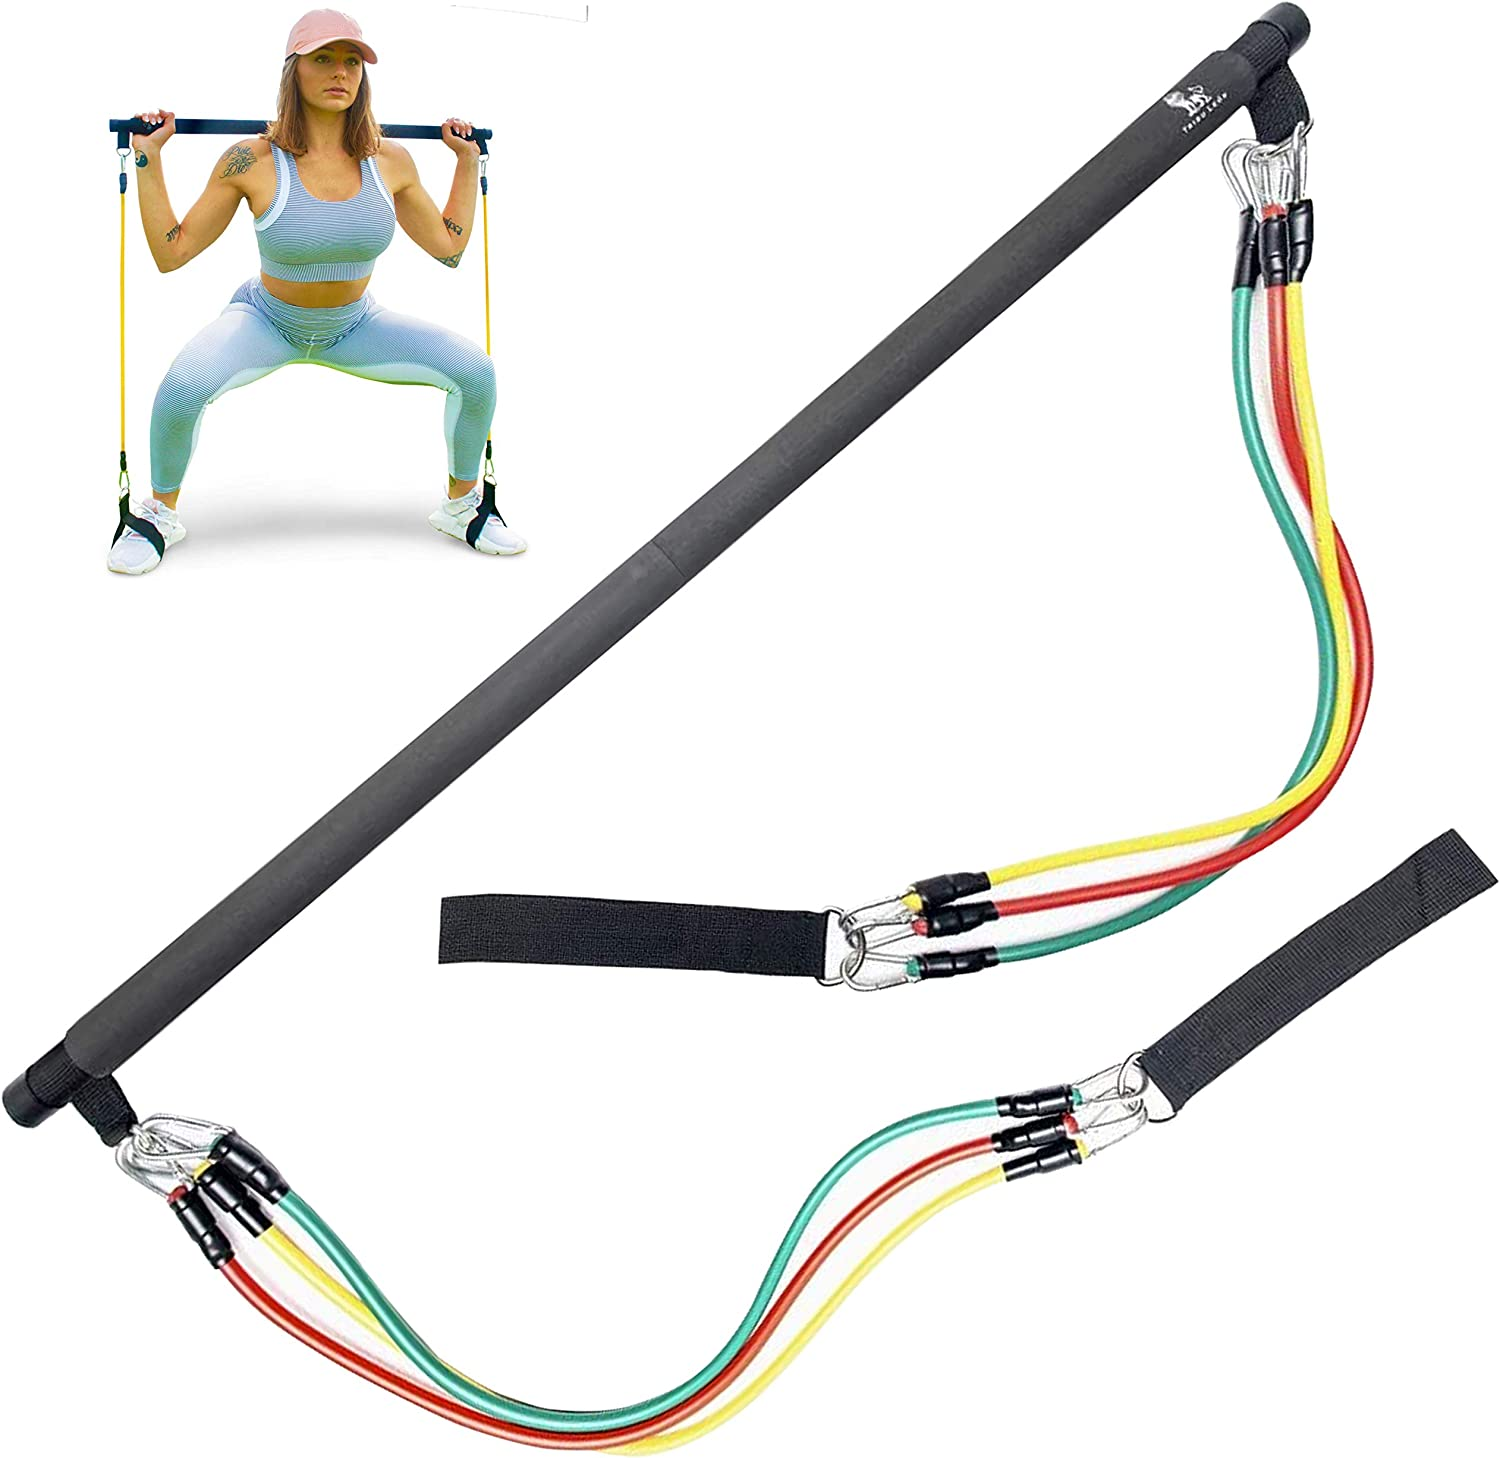 Tribu León Pilates Bar Resistance Bands Set | Exercise Bands for Men & Women | Home Gym Workout | Portable Exercise Equipment | Full Body Workout Set | Weights | Total Gym Equipment for Home | Fitness